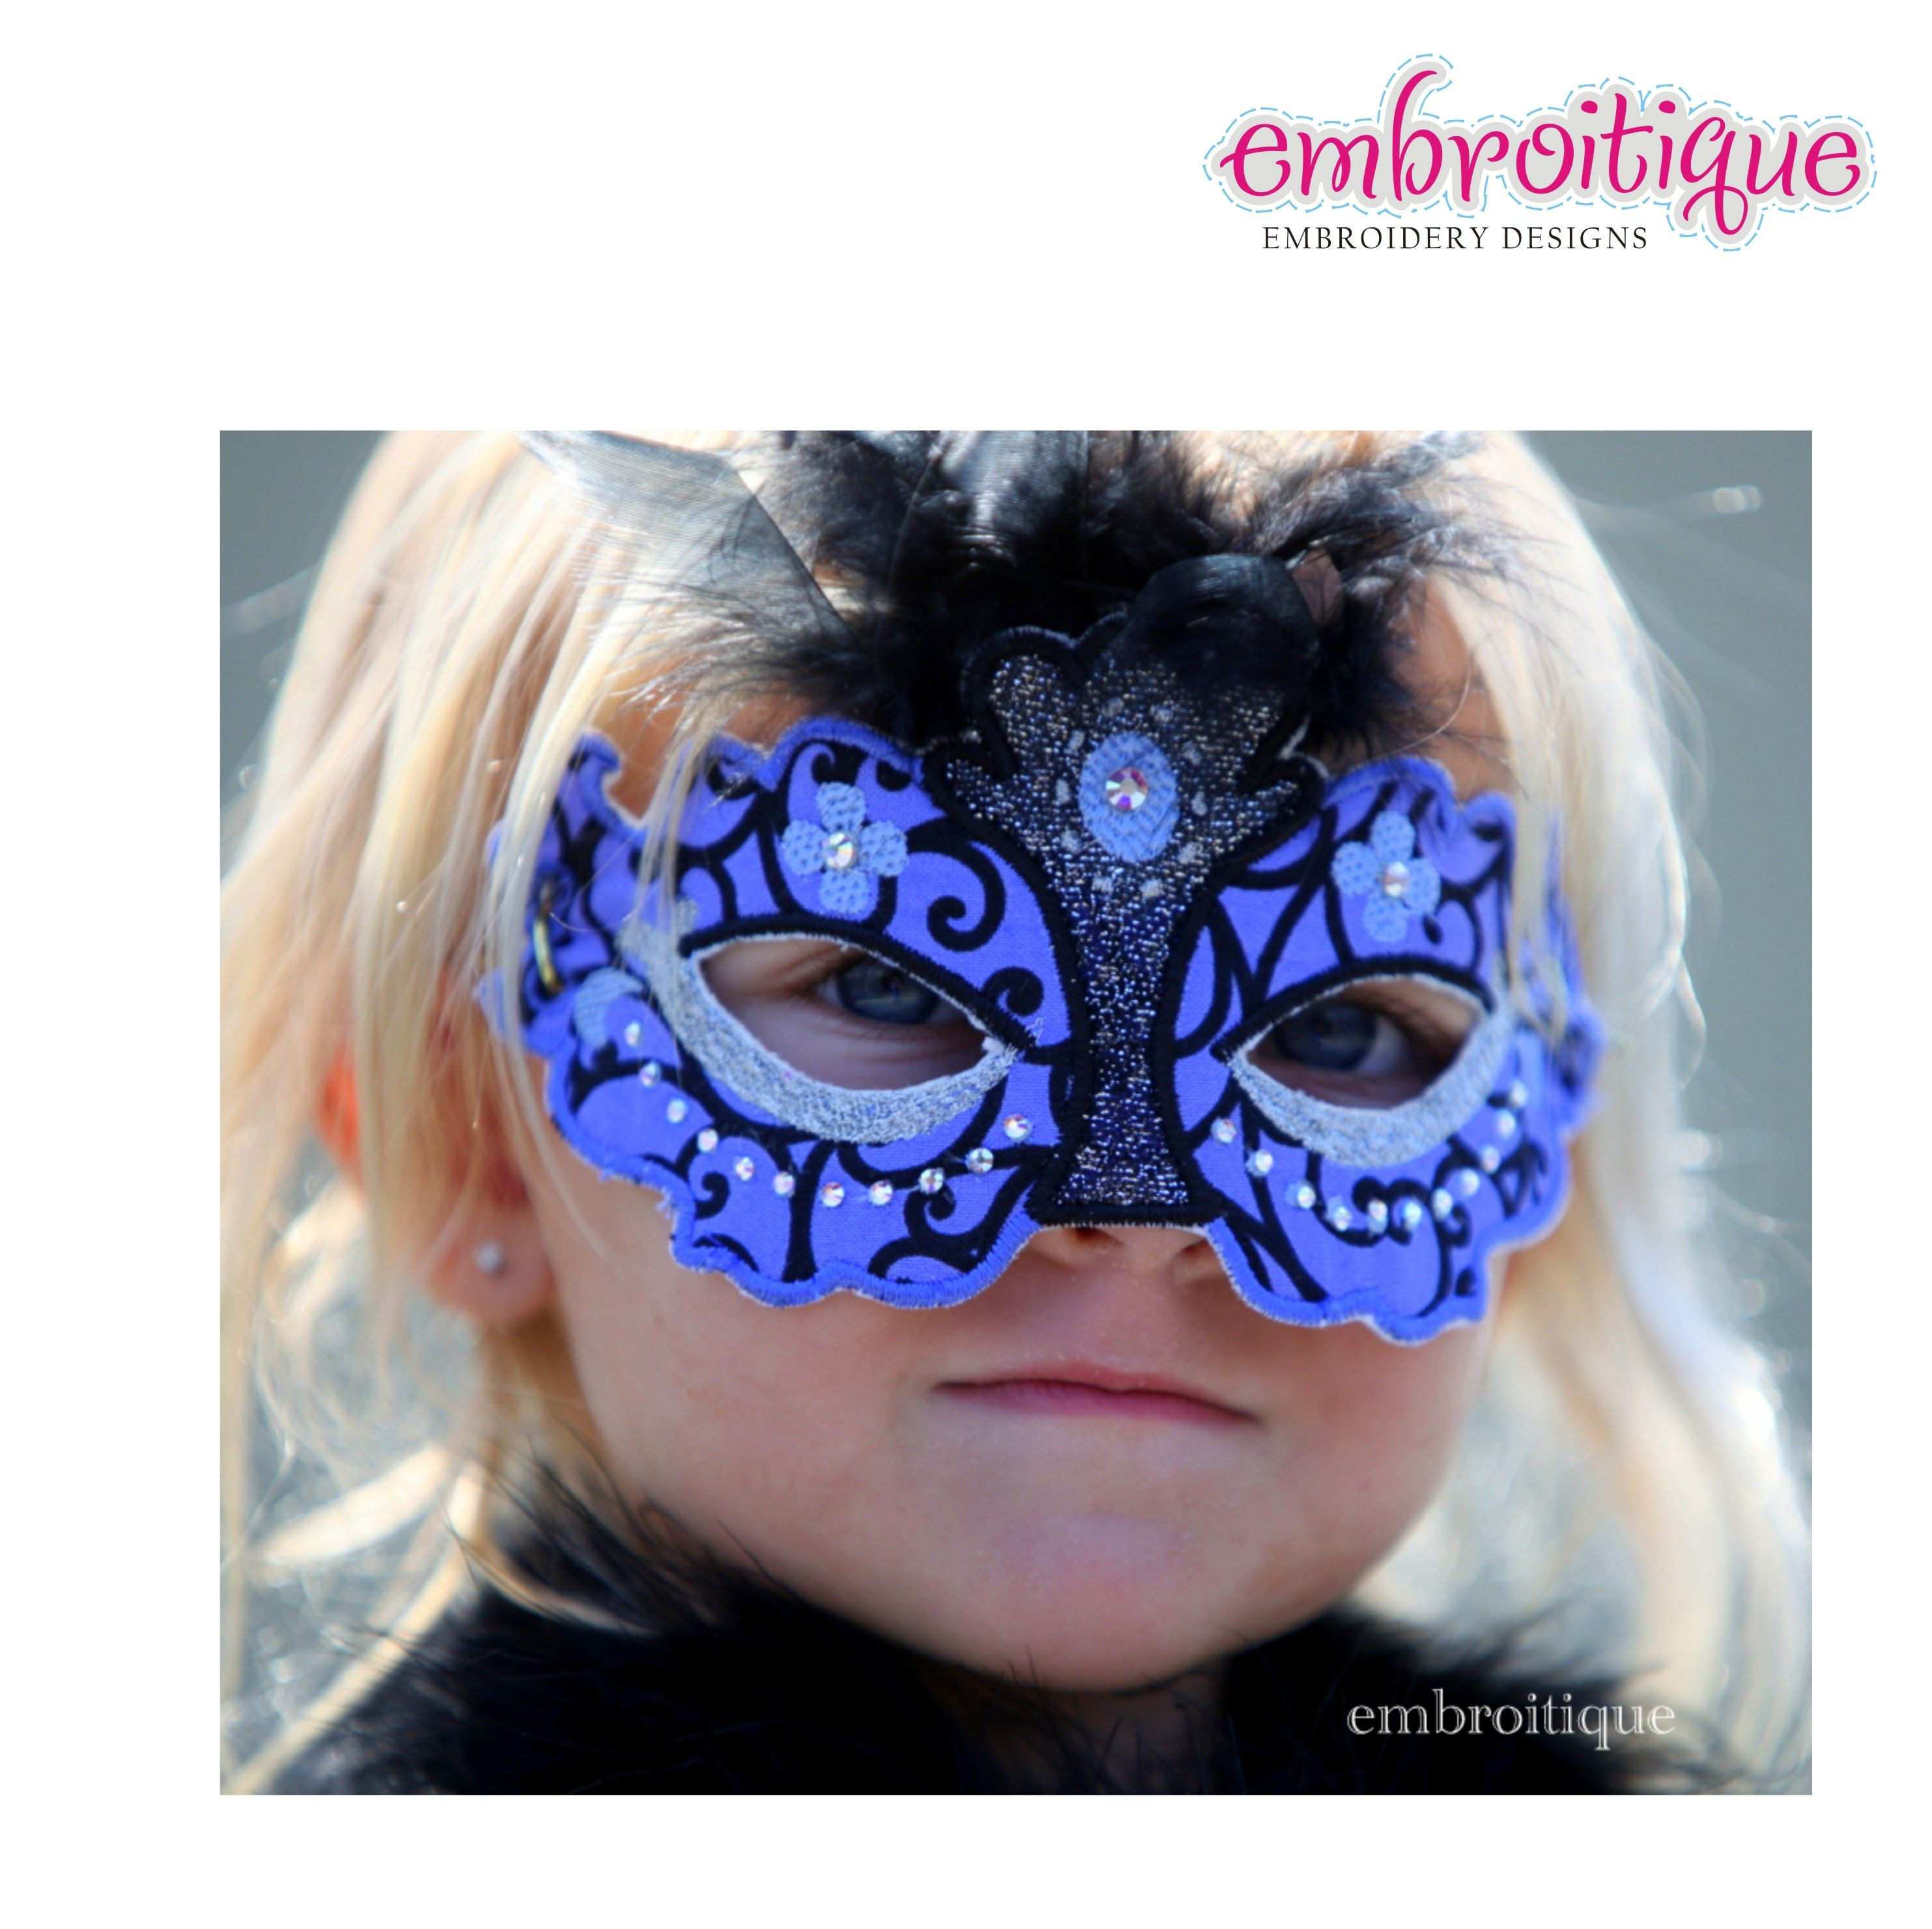 Pretend Play - Princess Mask set - Halloween - Mardi Gras on sale now at Embroitique!